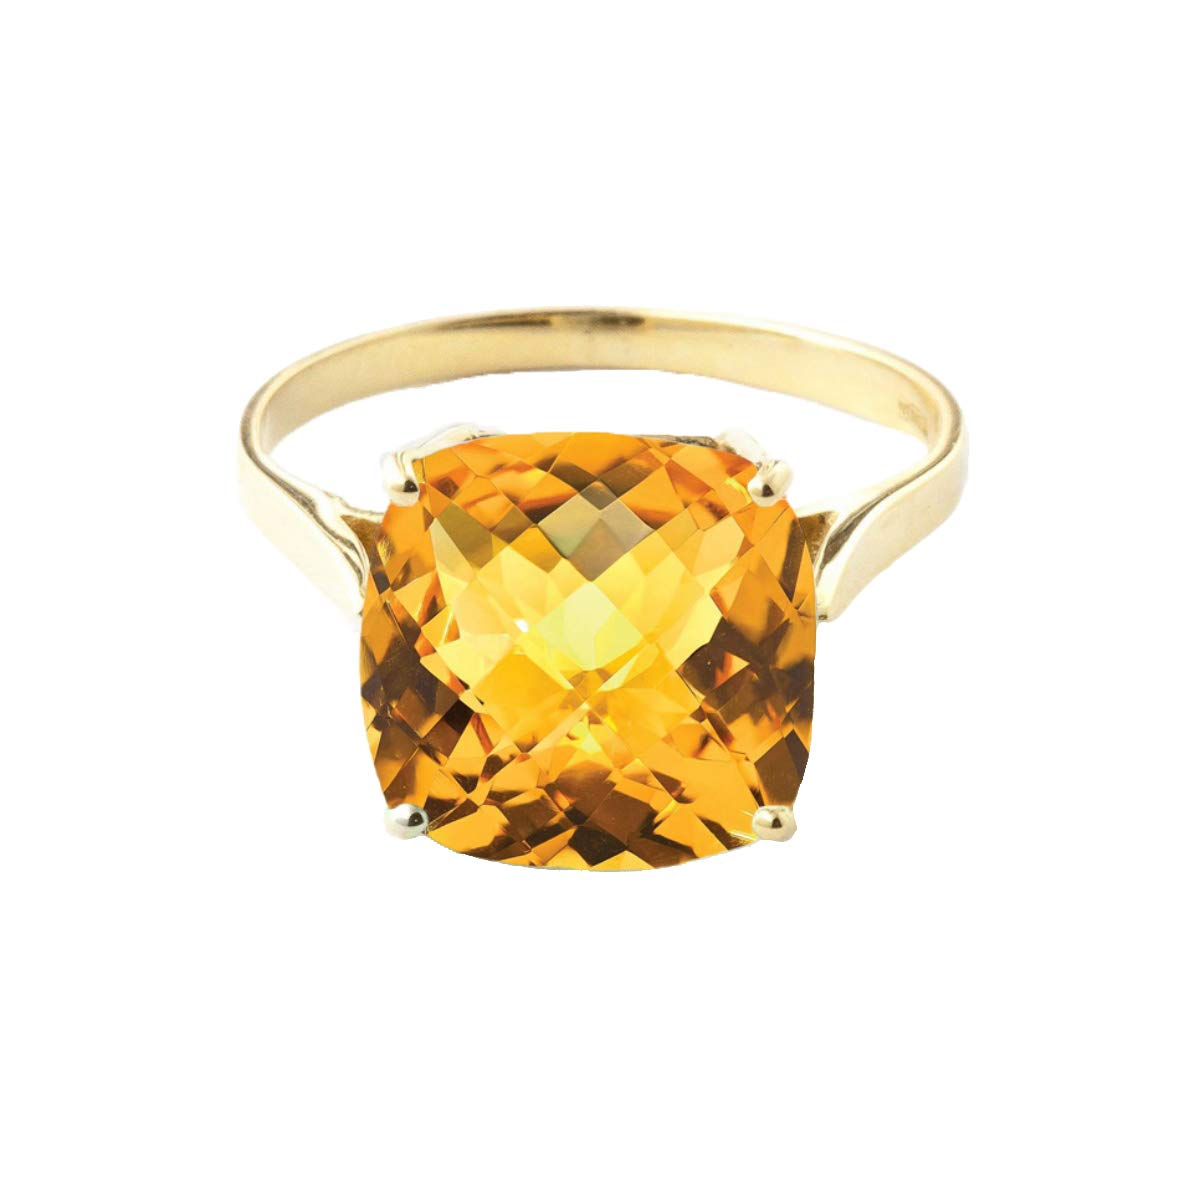 3.6 Carat 14K Solid Yellow Gold Ring Checkerboard Cushion Cut Natural Citrine 2313Y (8.5) by Galaxy Gold (Image #1)